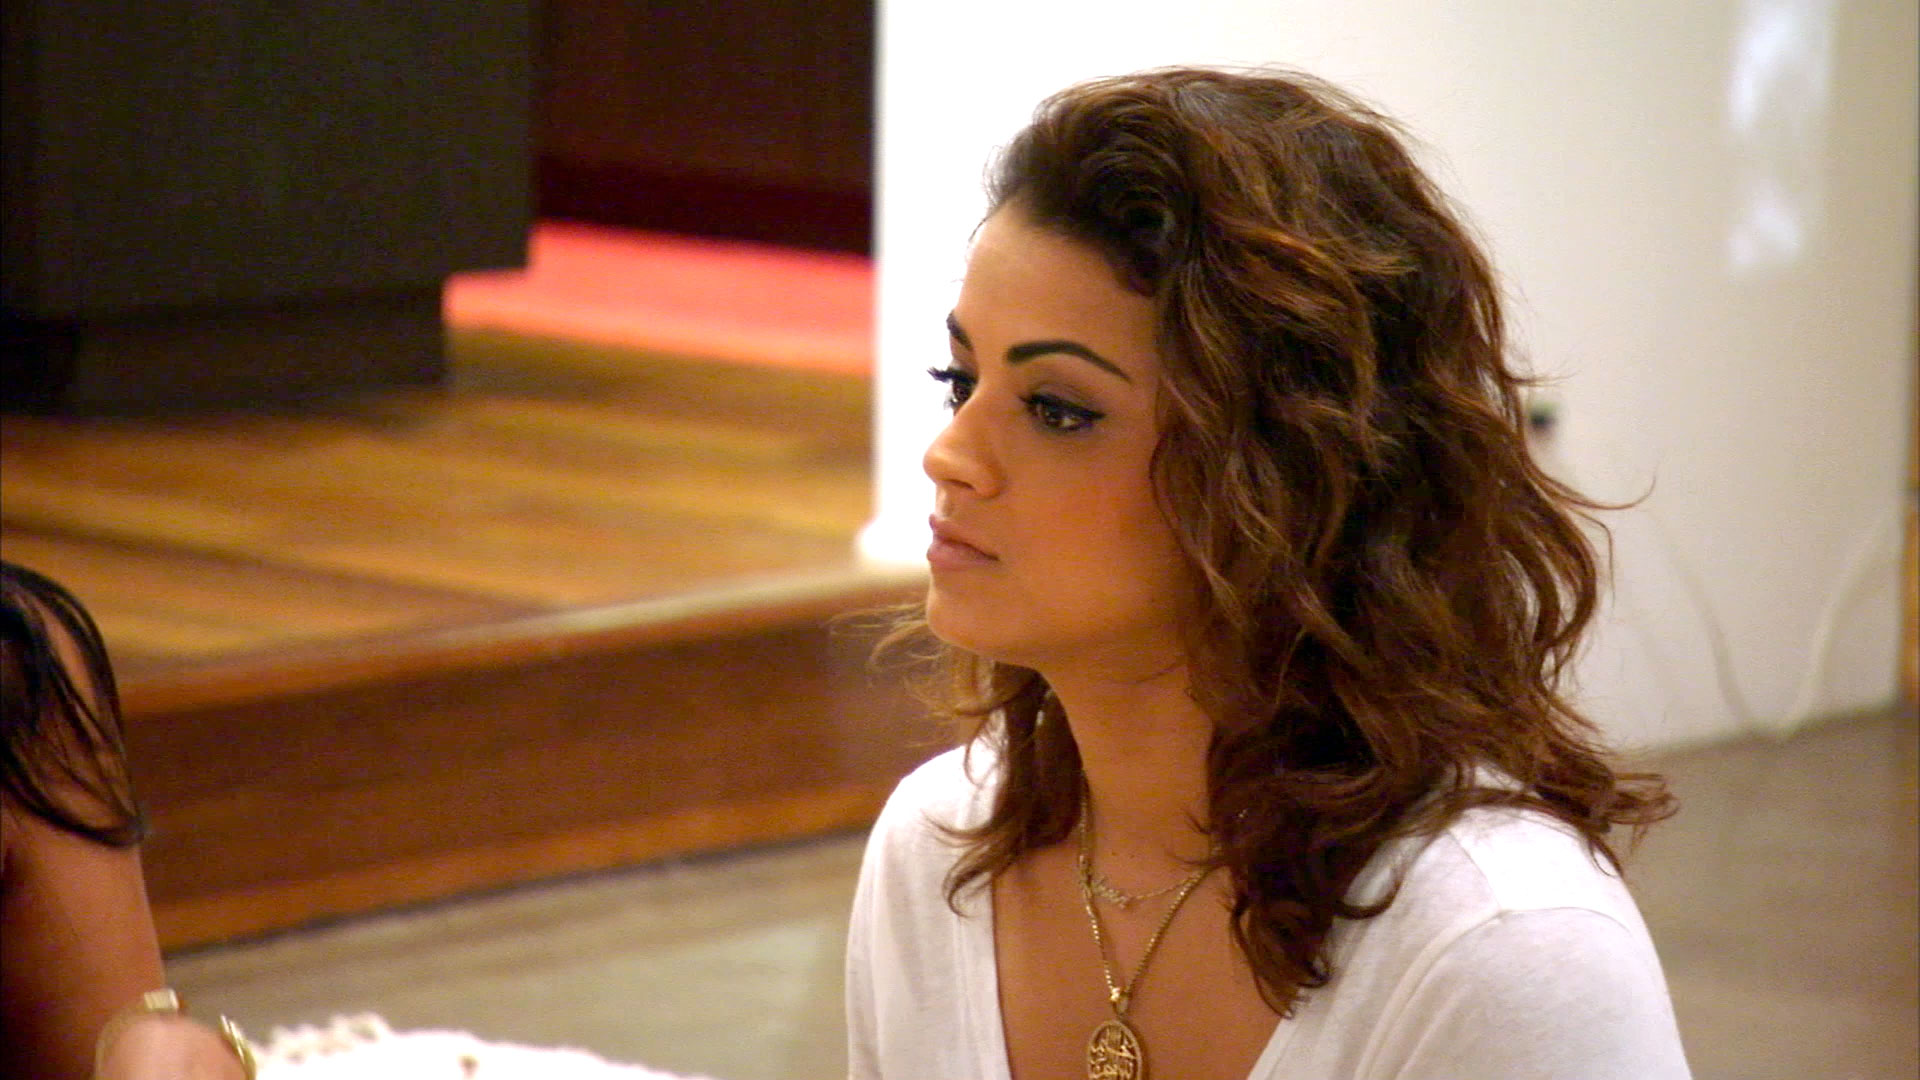 Recap A Shah Cation To Remember Shahs Of Sunset Blog